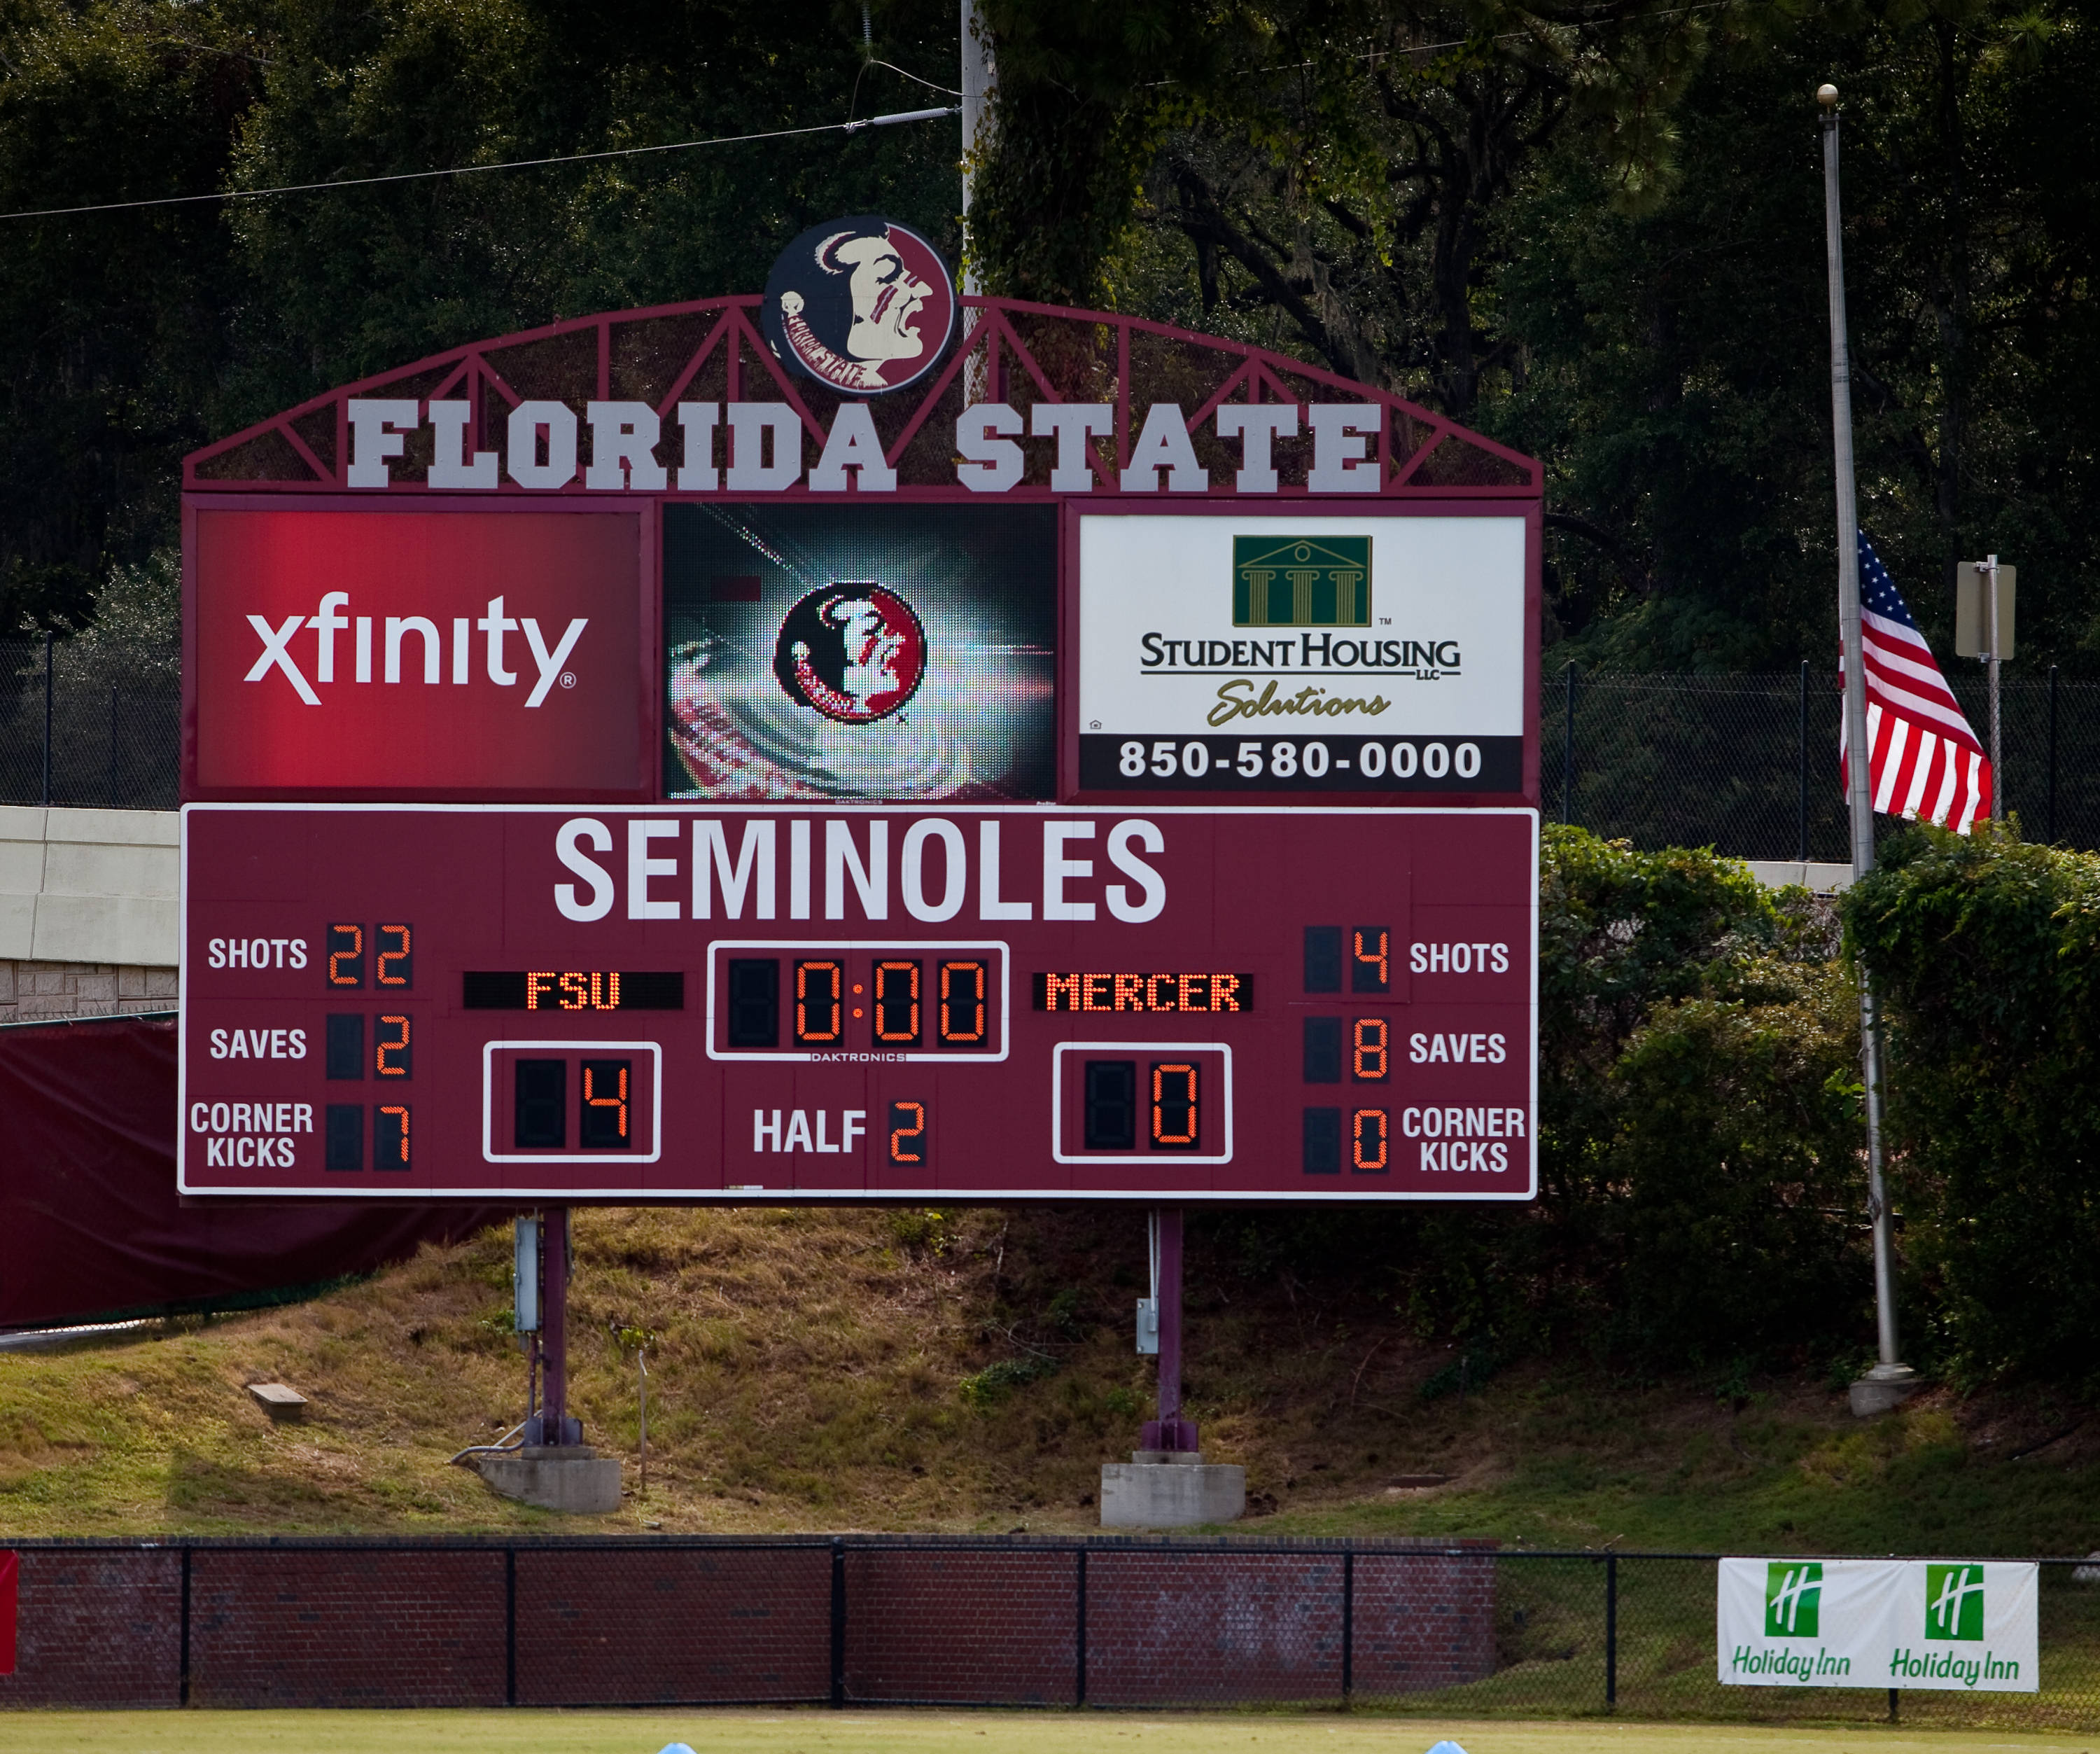 The Seminoles defeat the Bears 4-0.